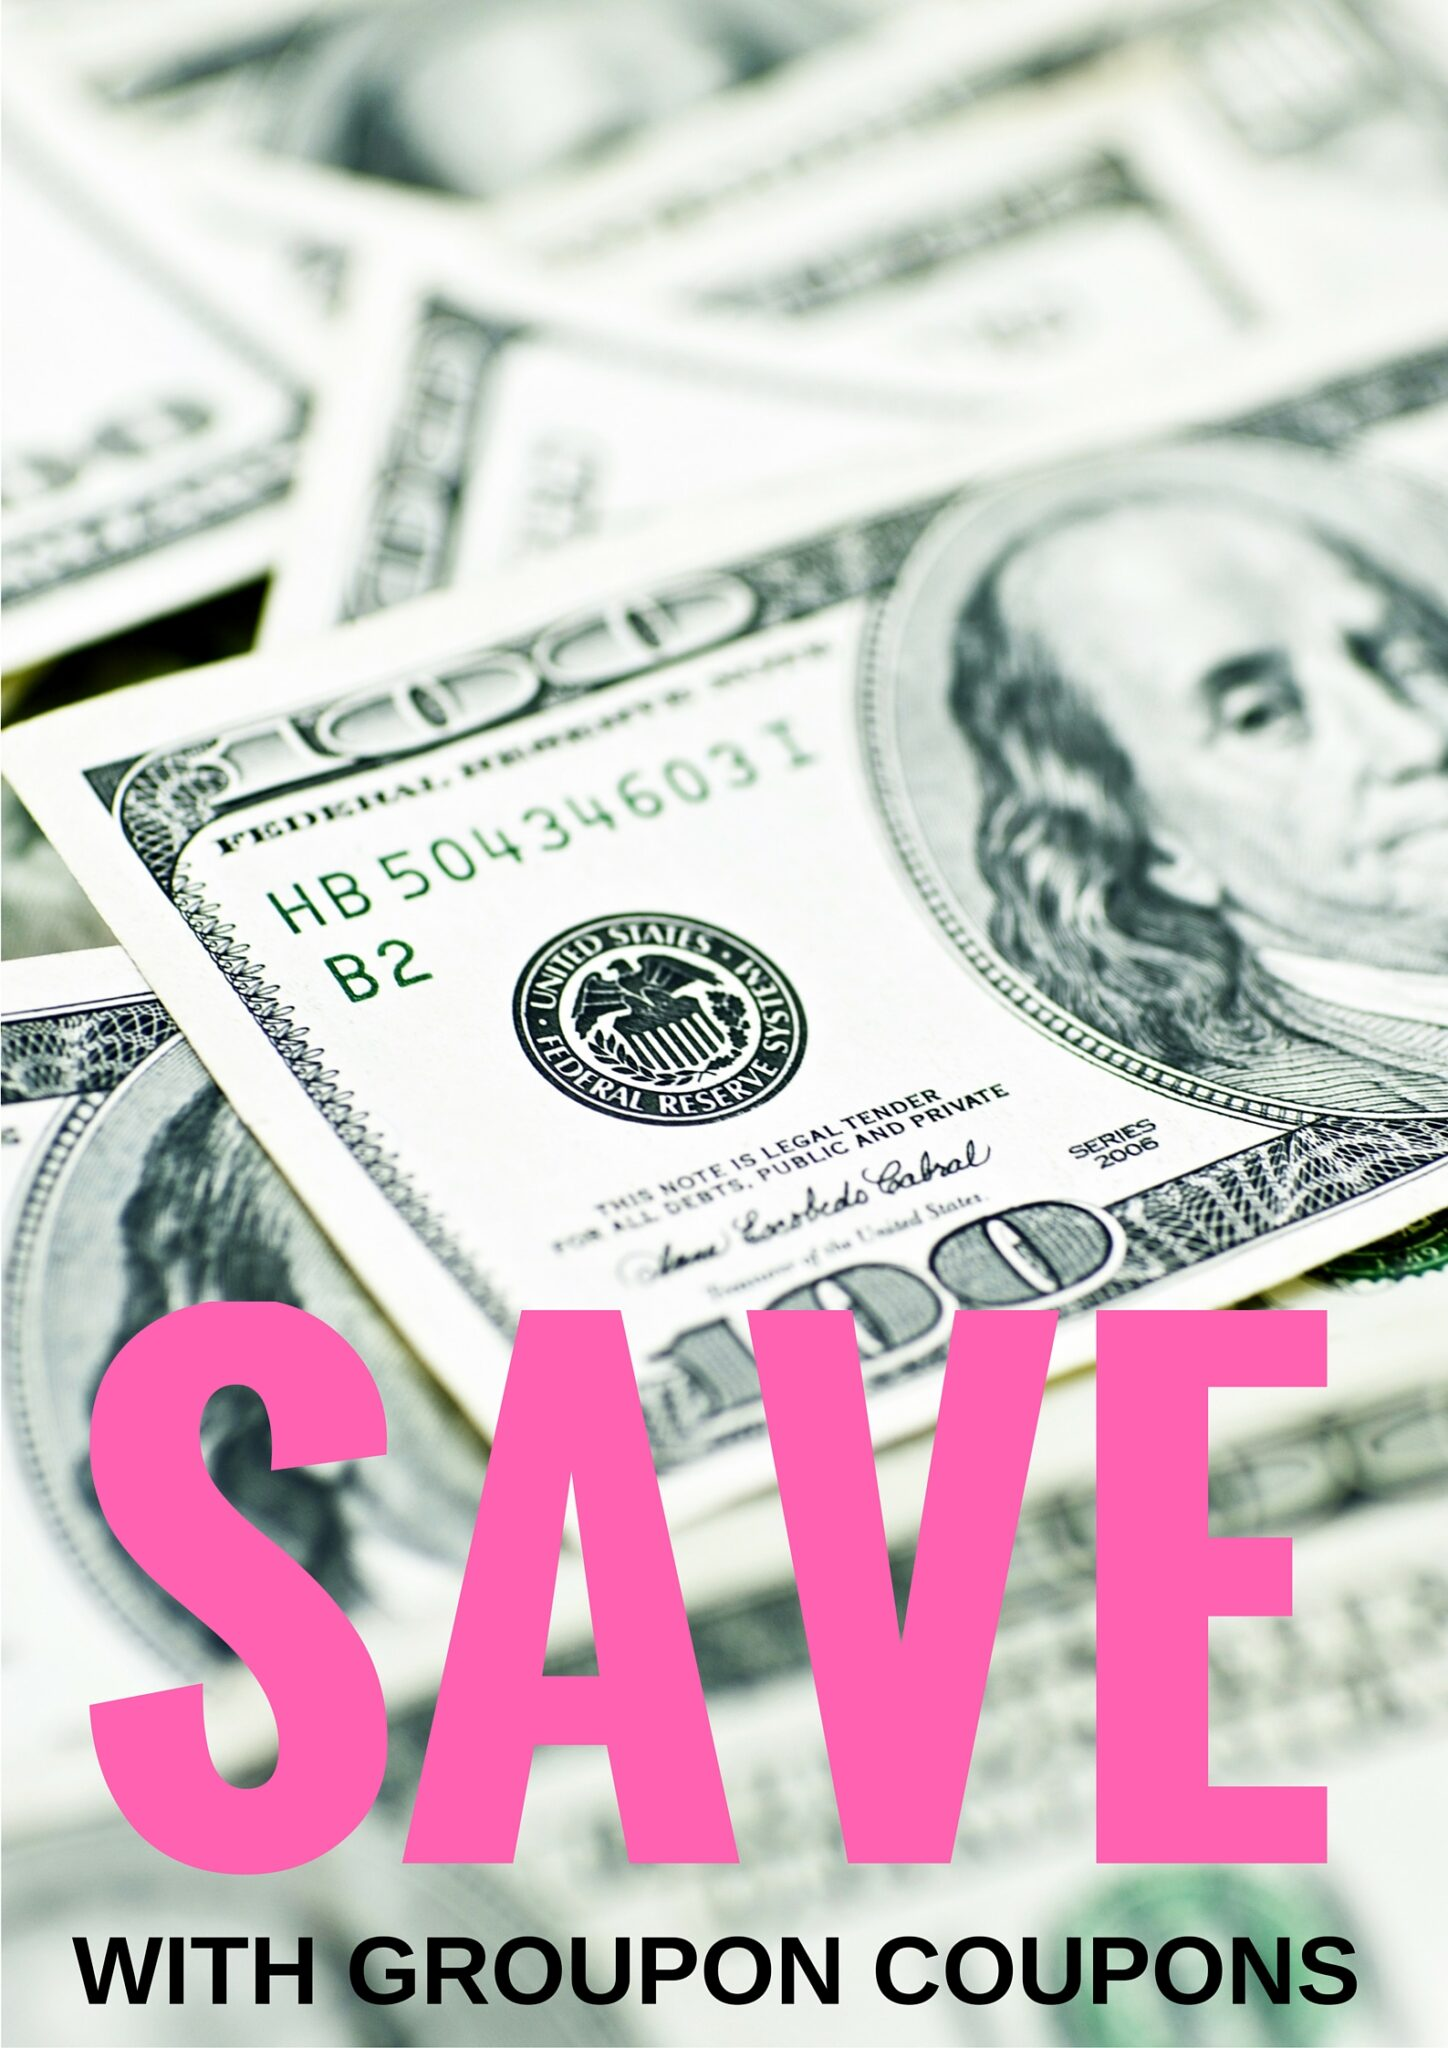 Save more with Groupon Coupons #GrouponCoupons #ad